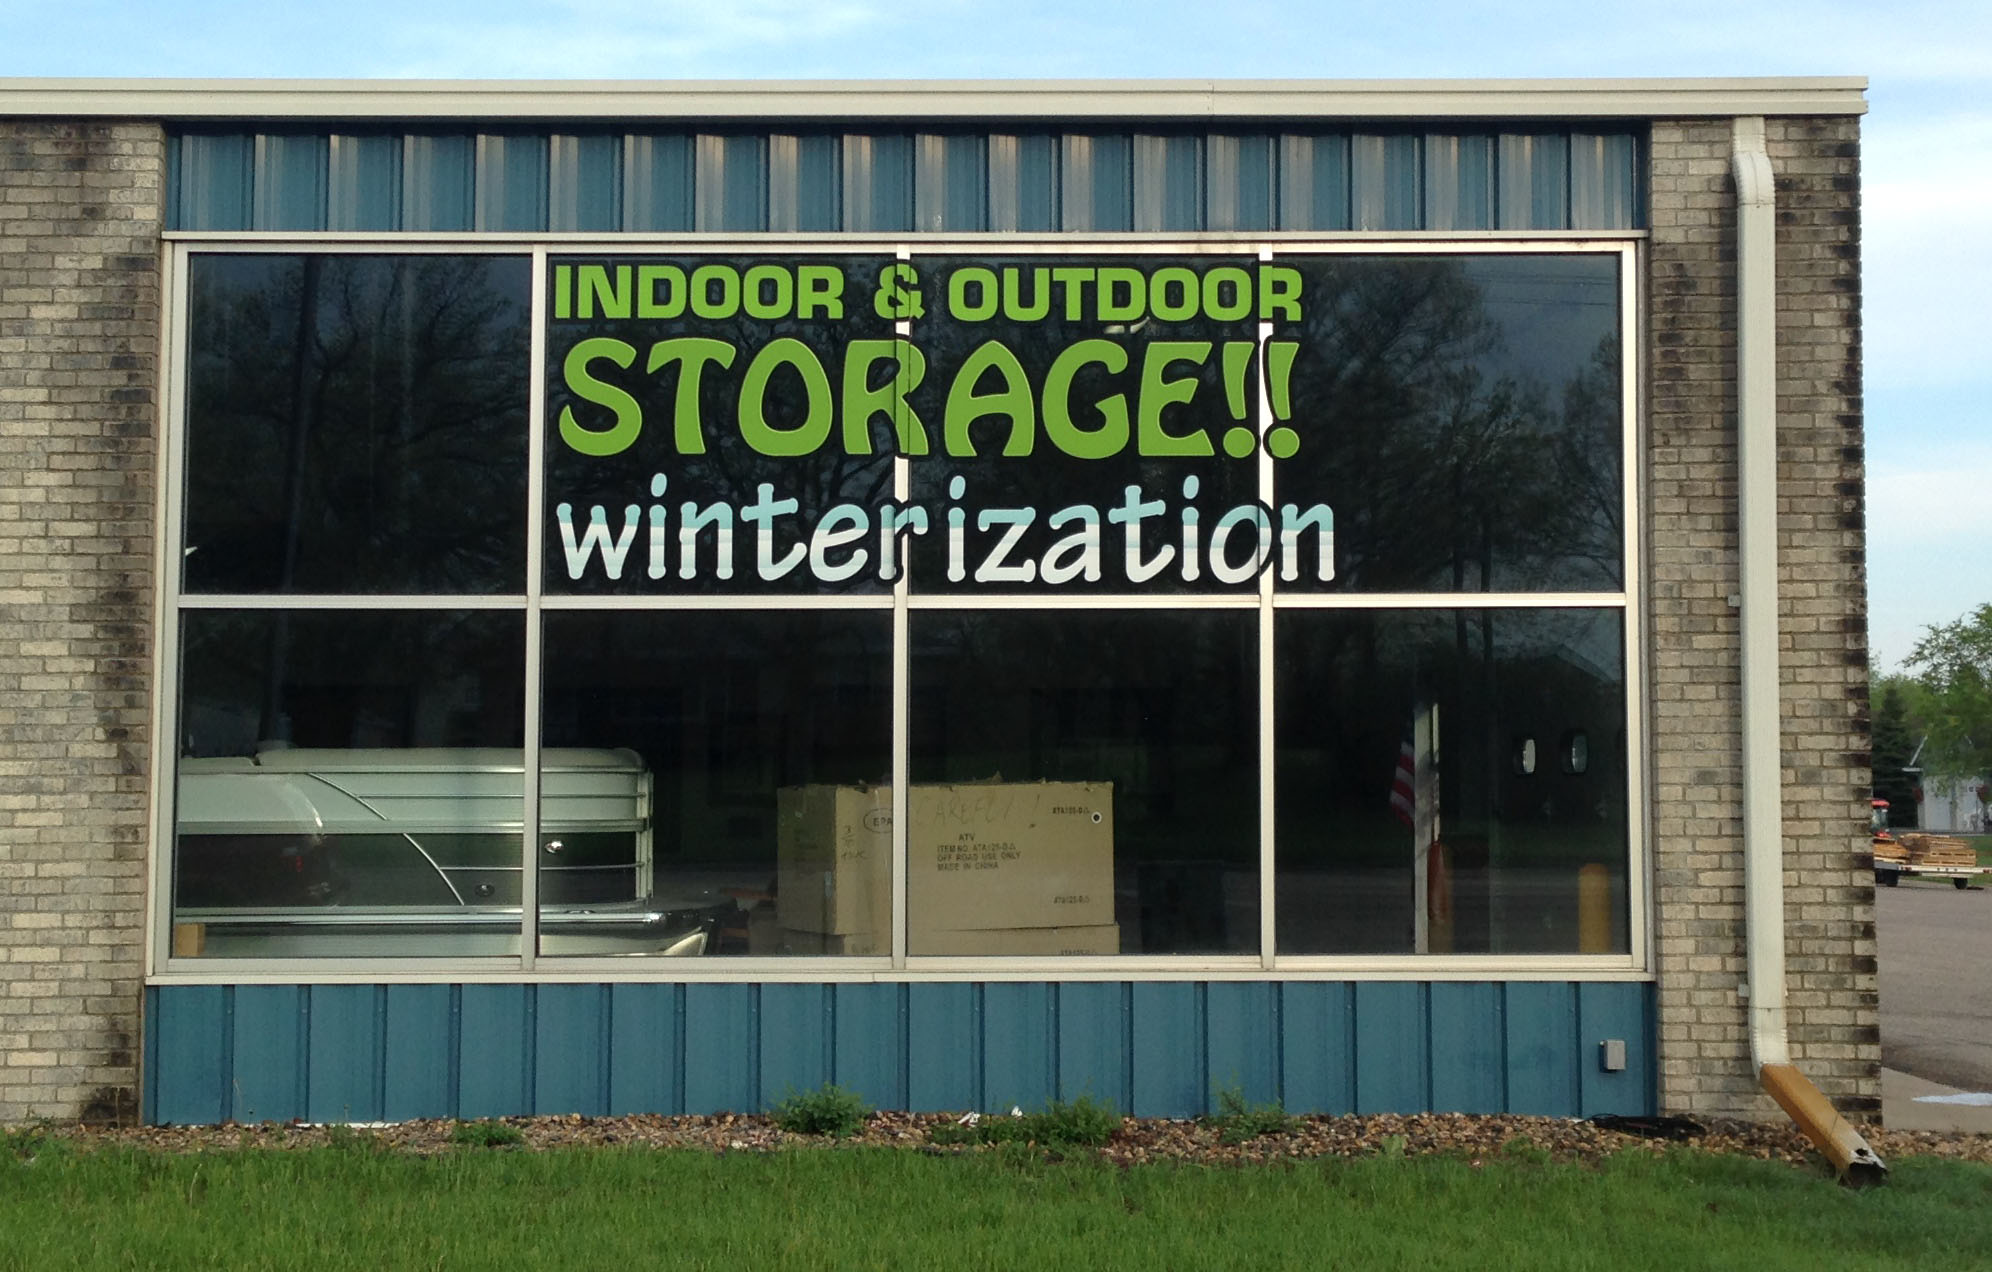 Custom Business Window Lettering from Signmax